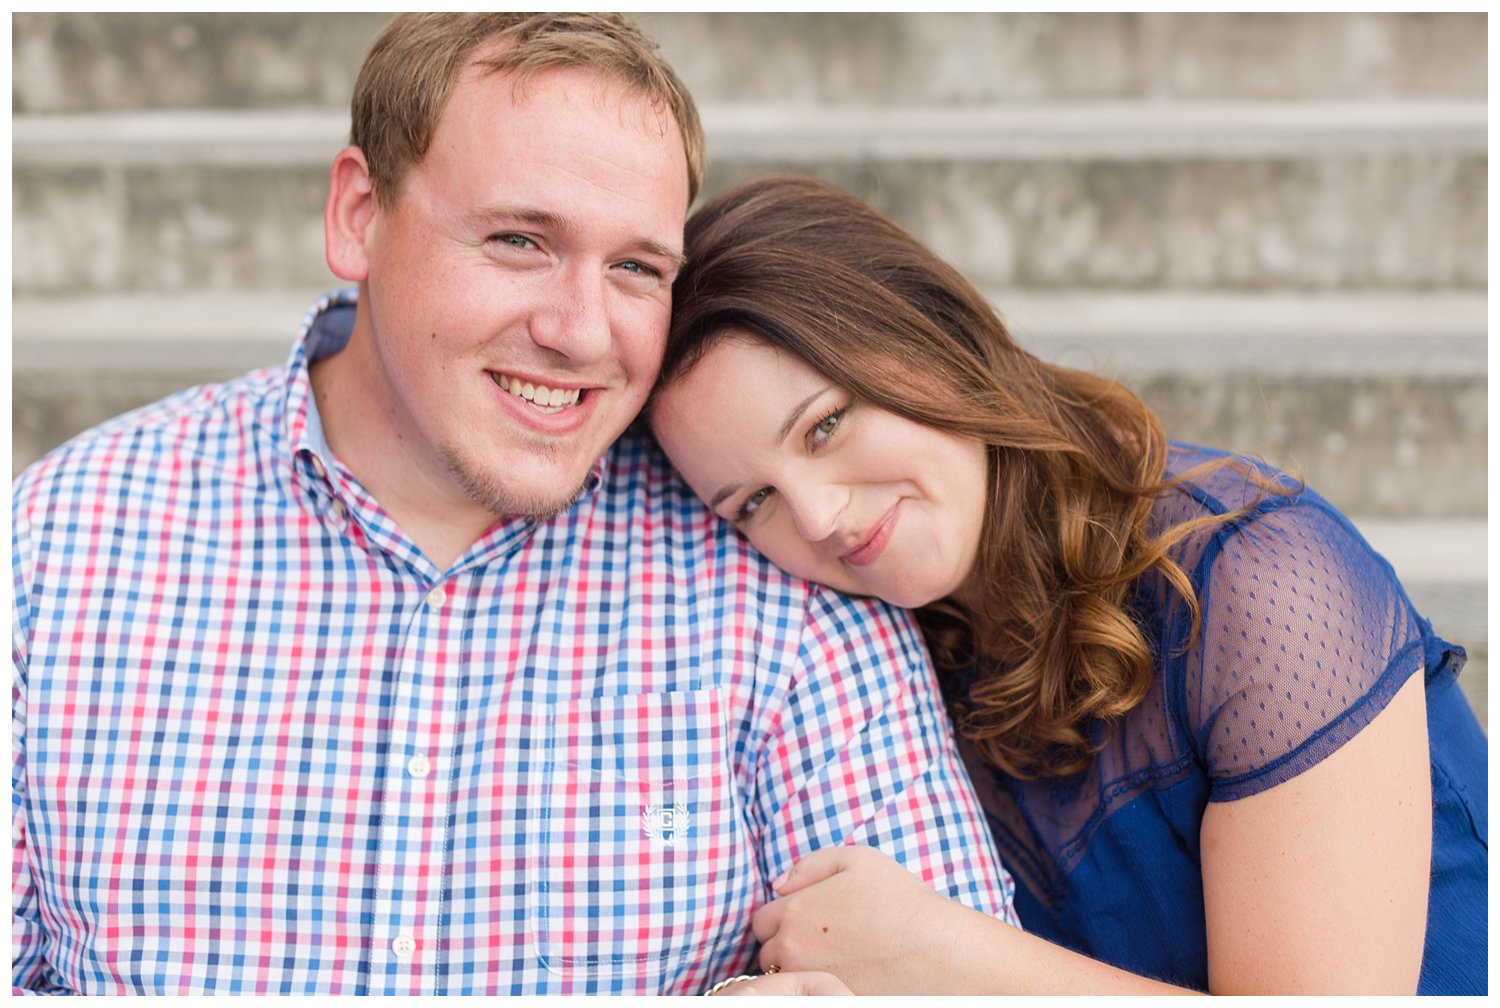 elovephotos old town alexandria engagement session_0793.jpg